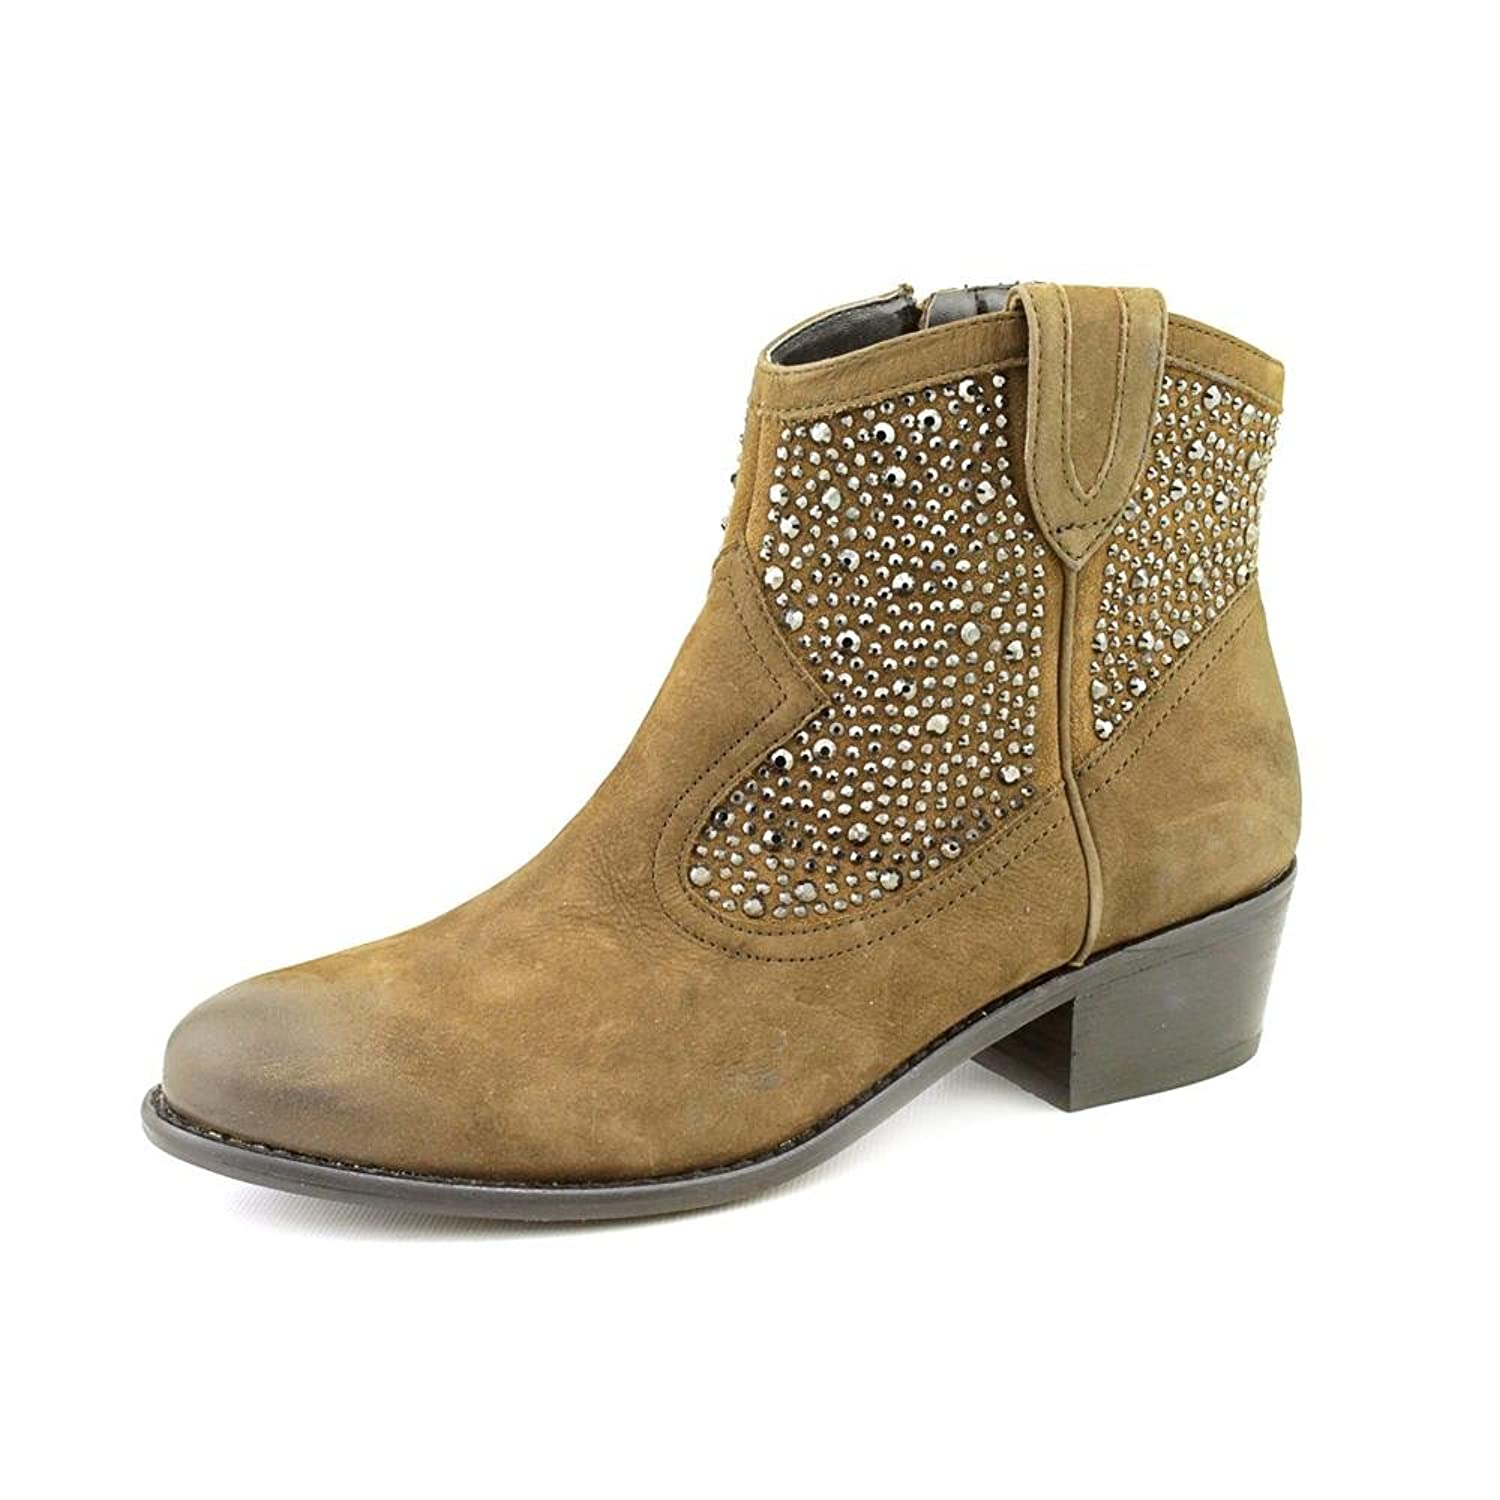 INC International Concepts Womens Booties Size 6.5 US Medium (B, M) Solid Olive